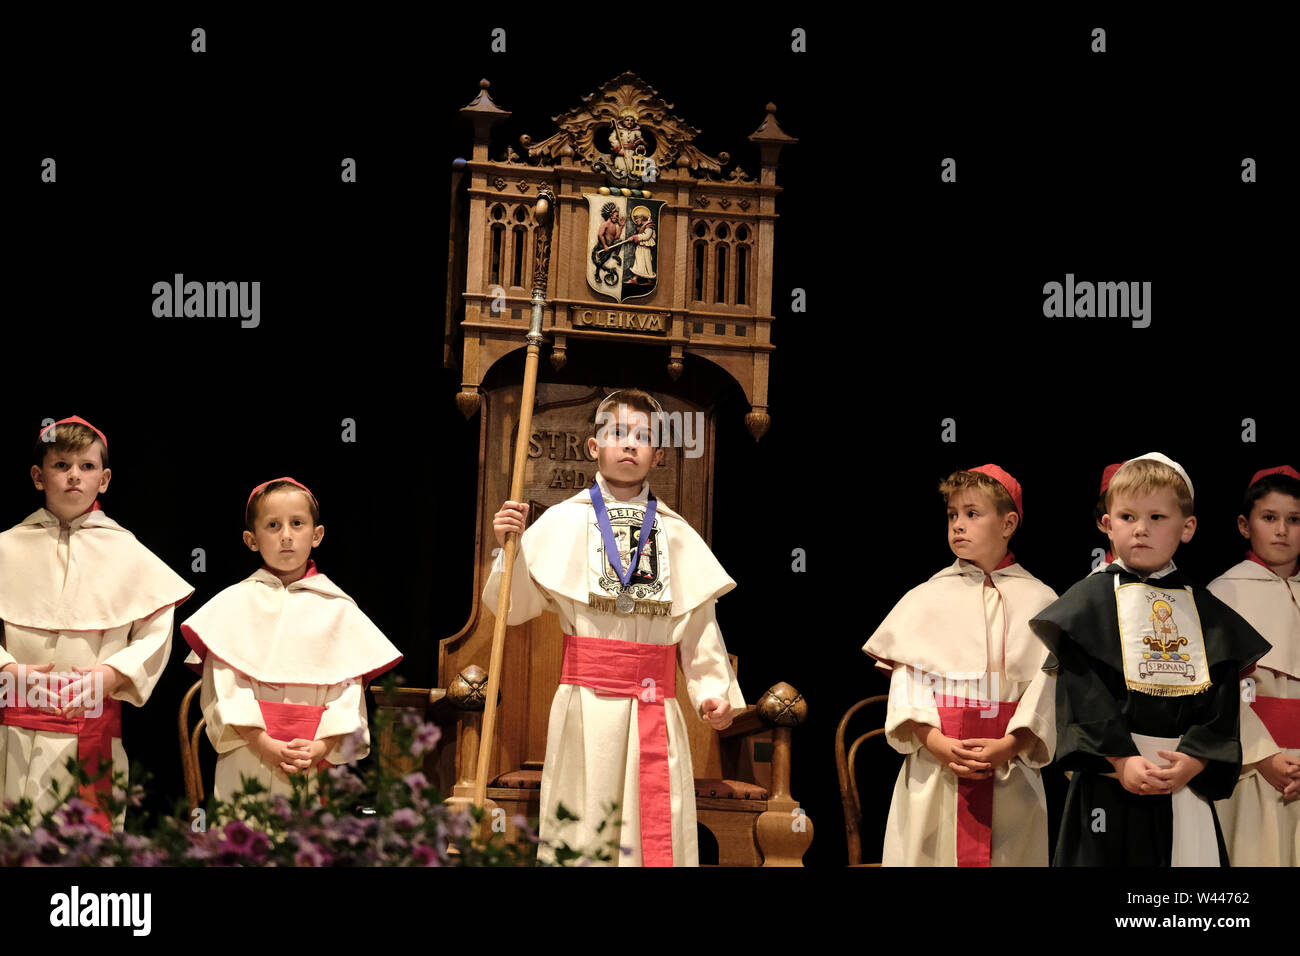 Innerleithen, UK. 19th July, 2019. St Ronans Cleikum Dux Boy of St RonanÕs School Aaron R Glendinning (centre) after his installation at the Cleikum Ceremonies in Memorial Hall, Innerleithen. as part of St Ronans Games Week, Friday 19 July 2019 . Instituted in 1827, The Games are the oldest organised sports meeting in Scotland and are now part of a week long festival that incorporates many events for every age group. Central to the festivities are the Cleikum Ceremonies when the town's association with its Patron Saint, St. Ronan, is celebrated ( Credit: Rob Gray/Alamy Live News - Stock Image